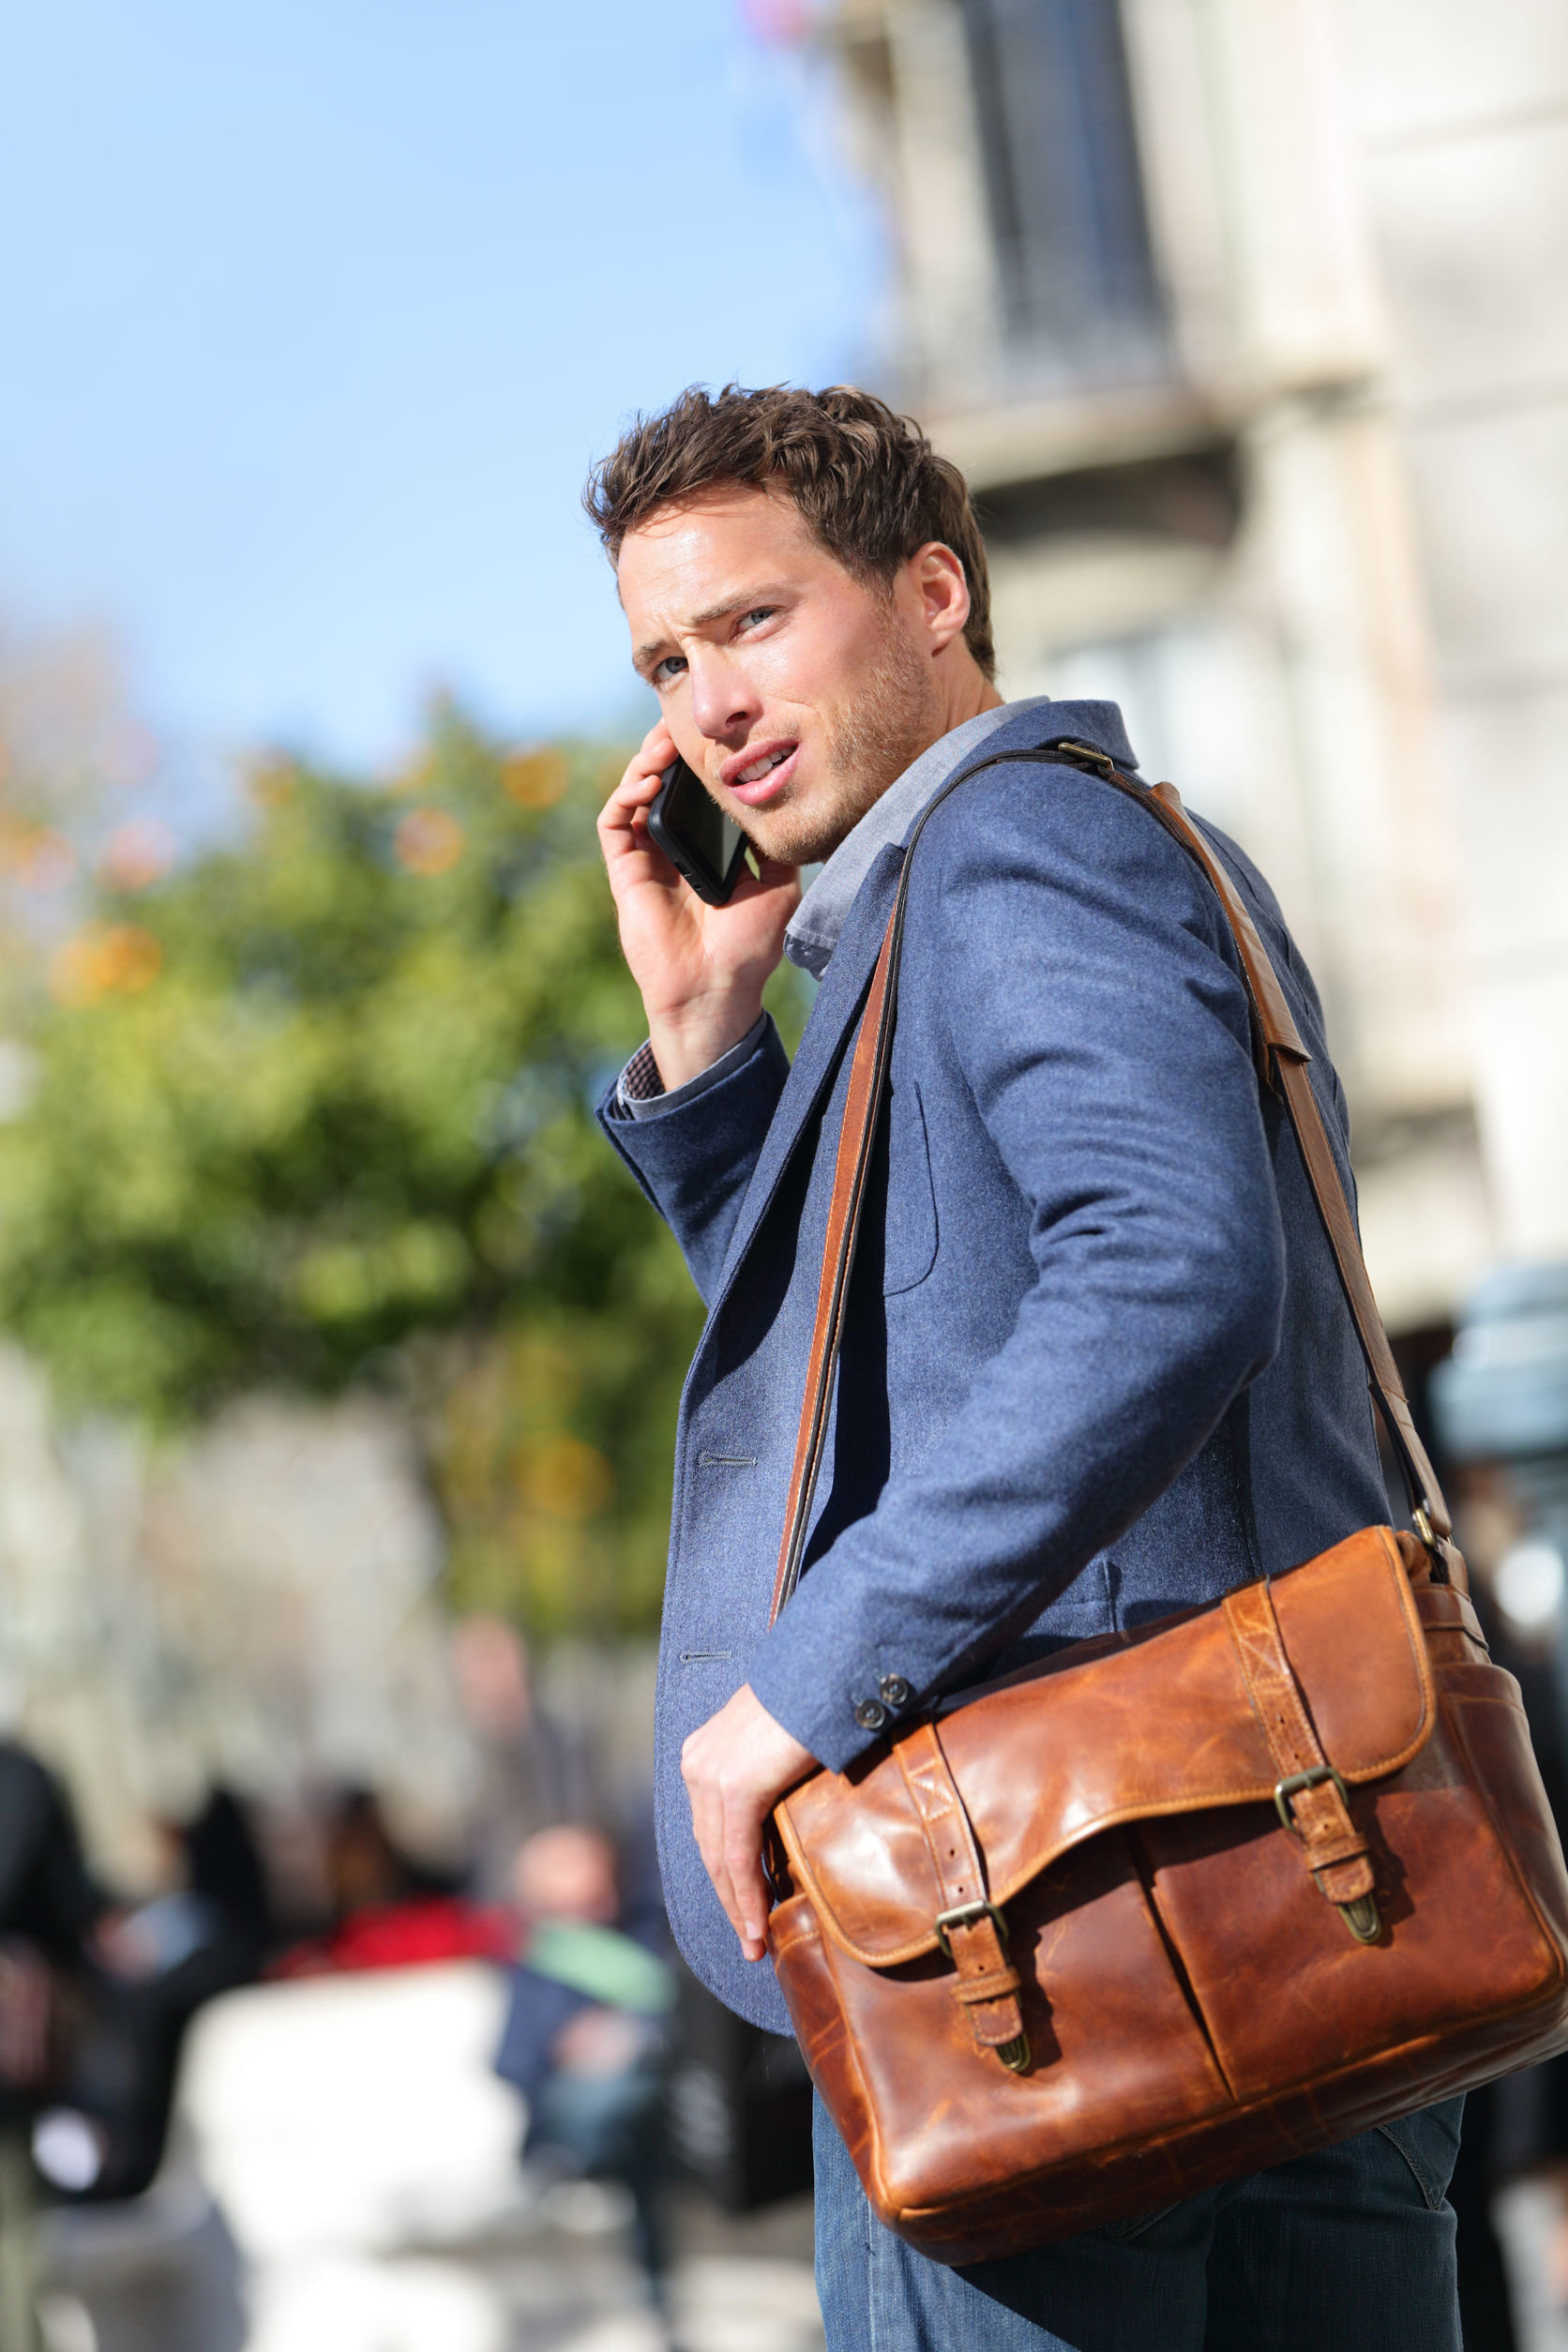 Business man on smartphone wearing jacket and leather bag